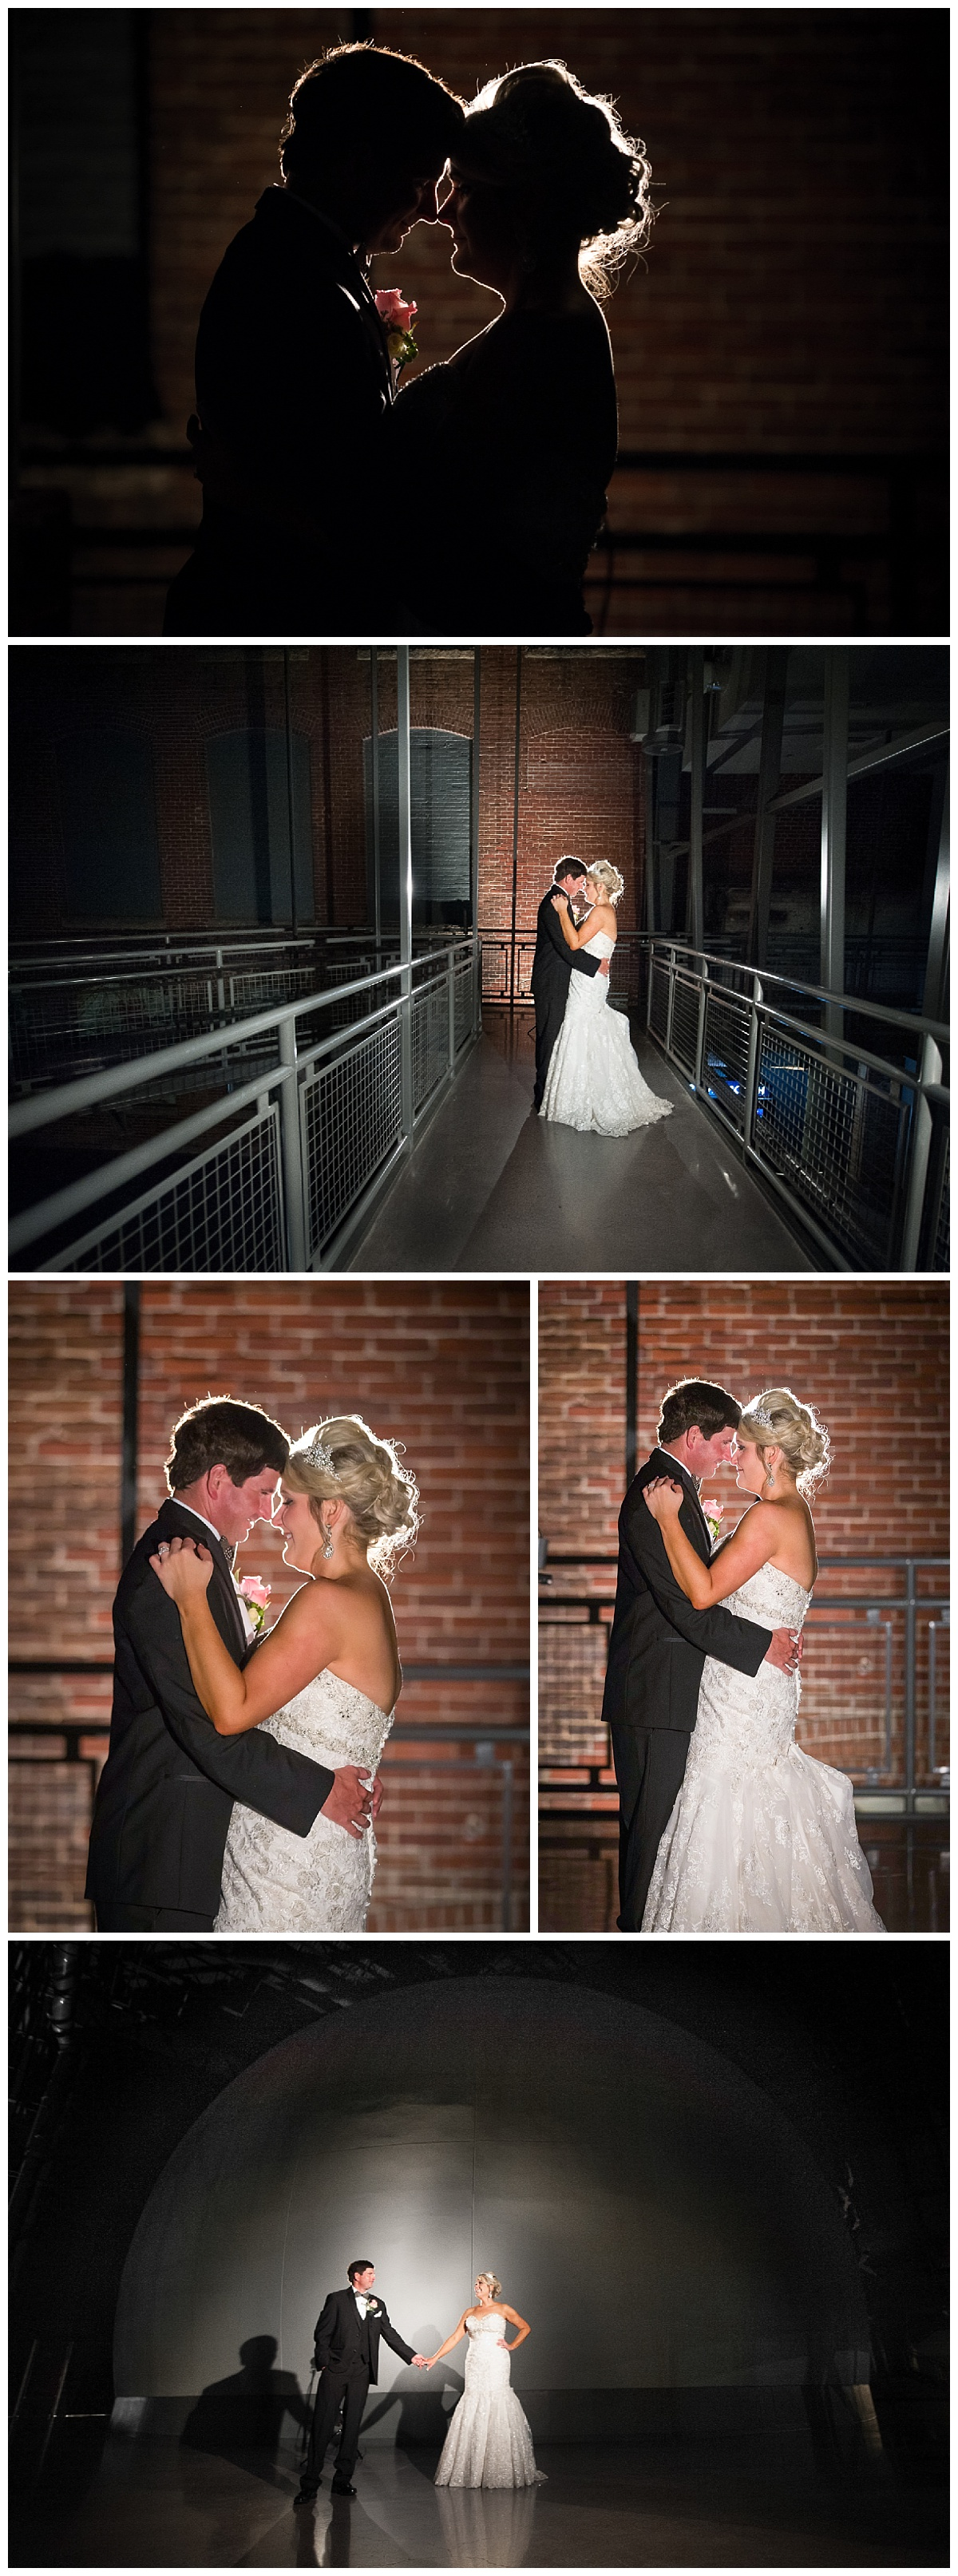 Wedding portraits at SC State Museum planetarium